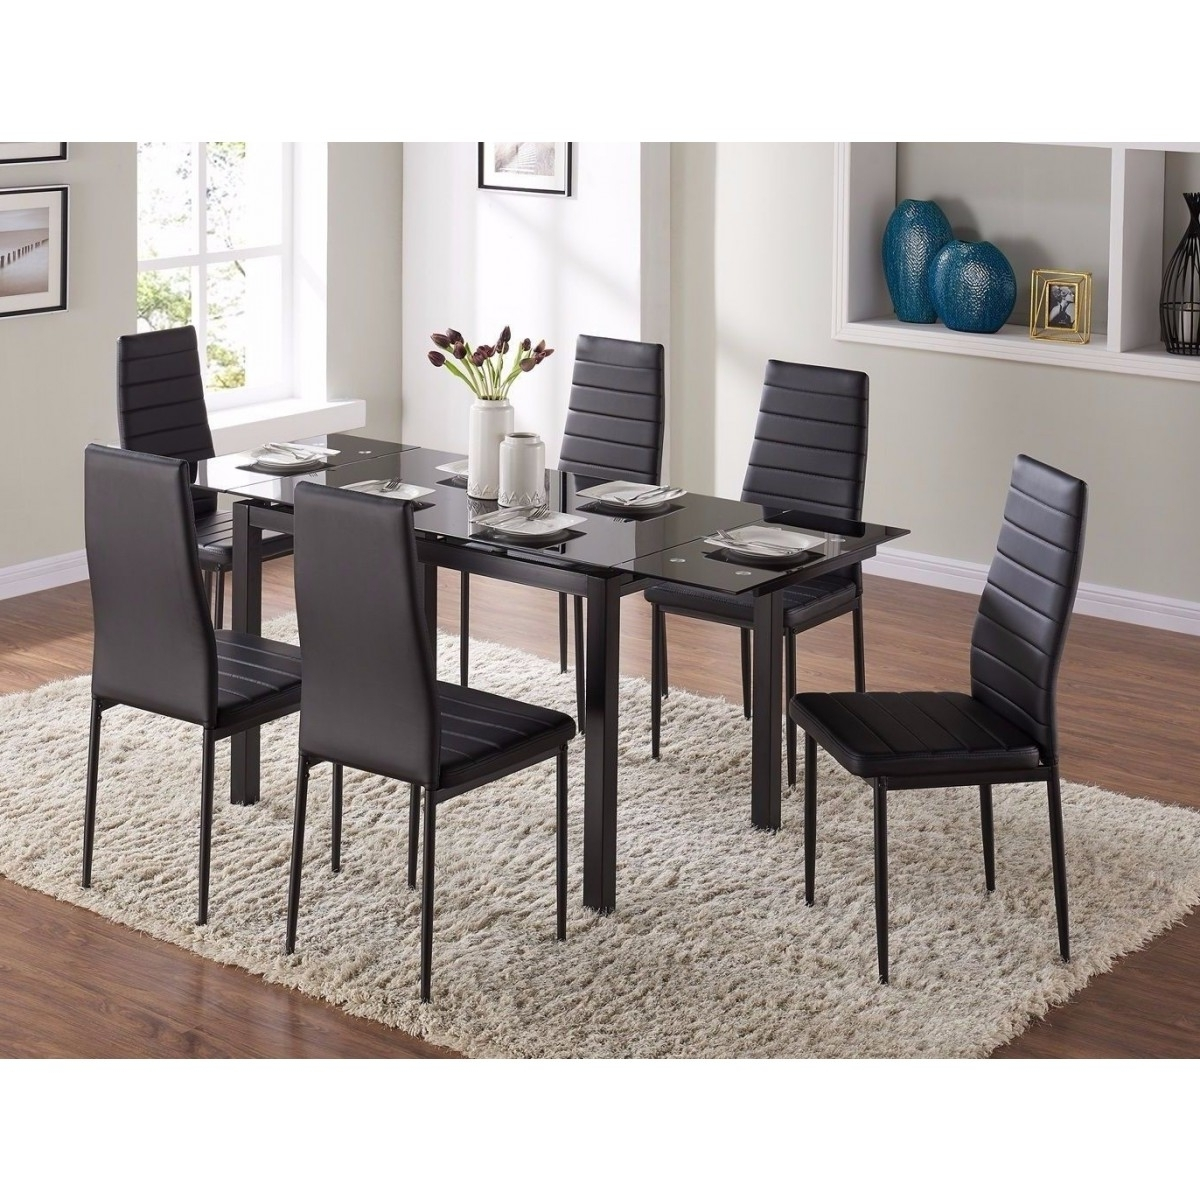 7Pc Extending Glass Dining Table & Black Faux Leather Chairs Set Intended For Preferred Glass Dining Tables And Leather Chairs (View 2 of 25)